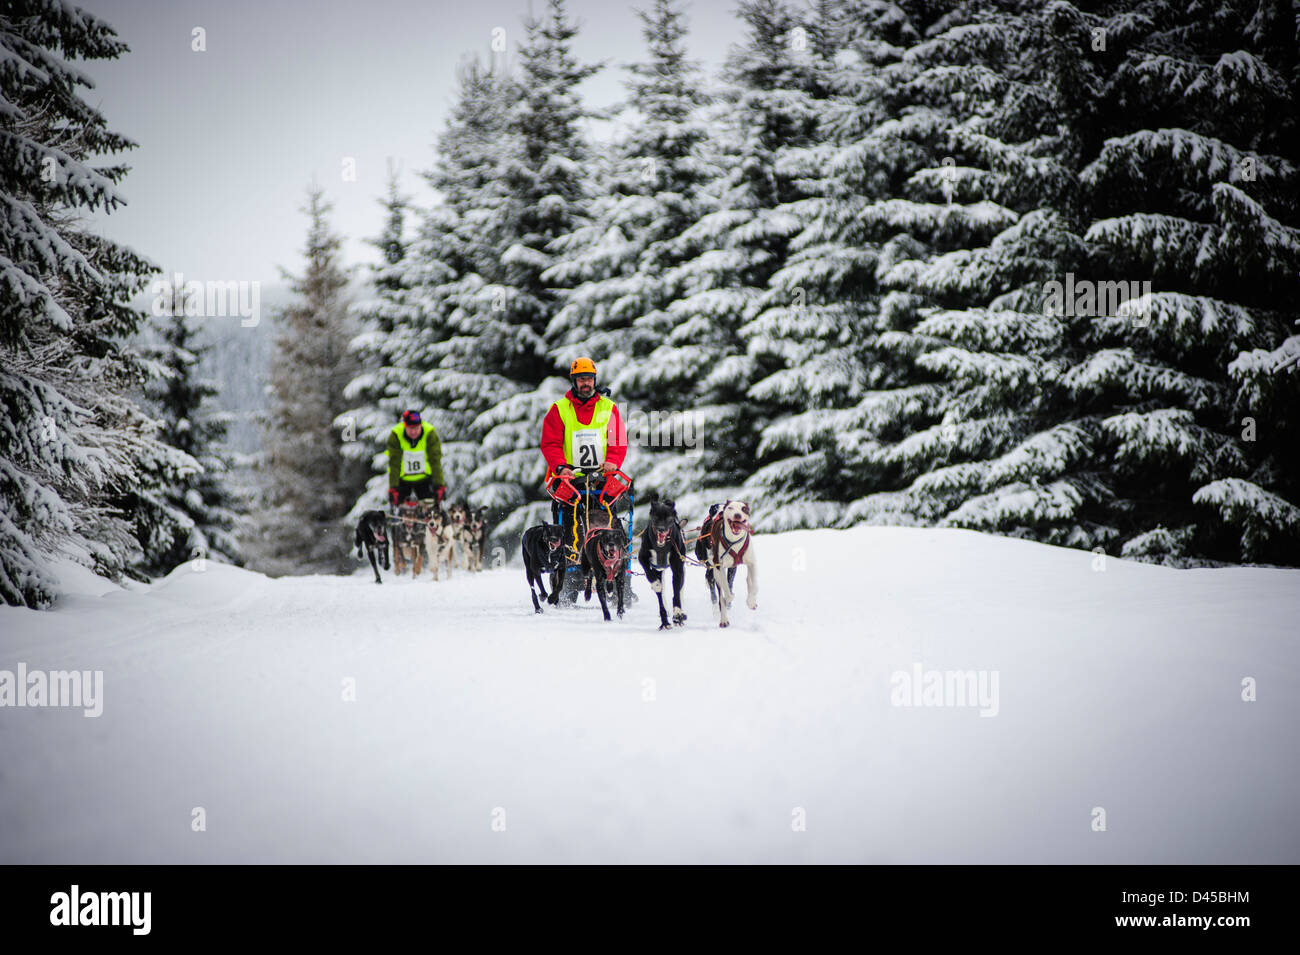 A sled dog team racing at the Husqvarna Tour Border Rush competition in Jakuszyce, Poland. - Stock Image